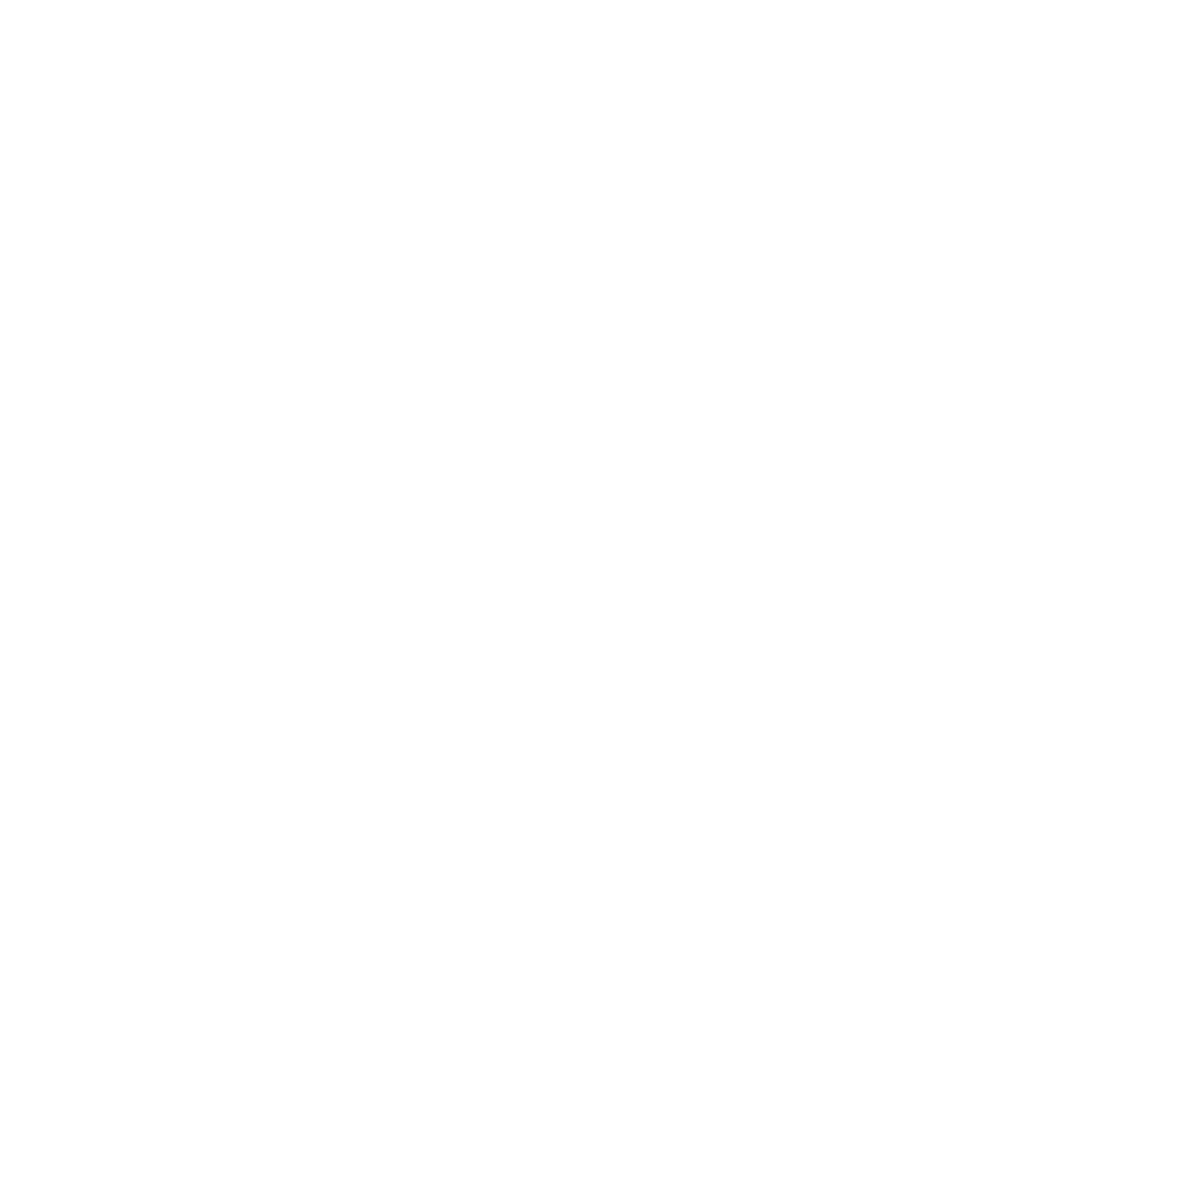 Strategic Partner Pixels & Digits